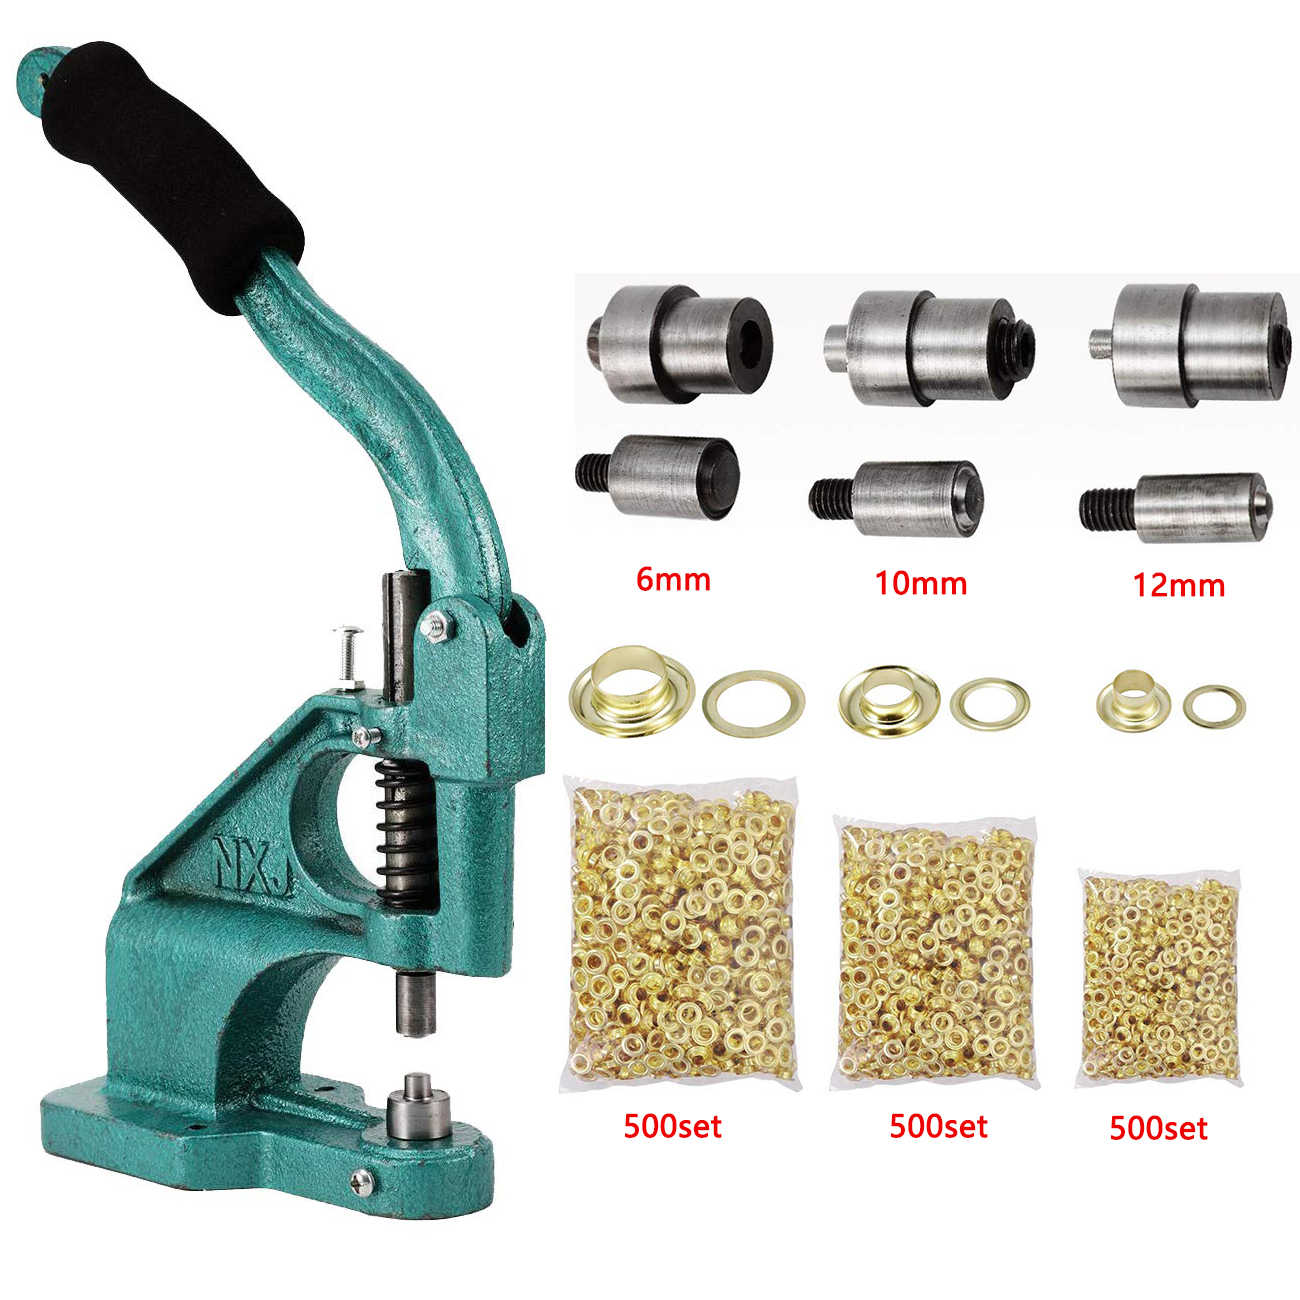 Grommet Eyelet Machine Tangan Tekan Seni Kerajinan Jahit dengan 3 Dies + 1500Pcs Grommet 6/10/12mm DIY Manual Snap Lubang Alat Press